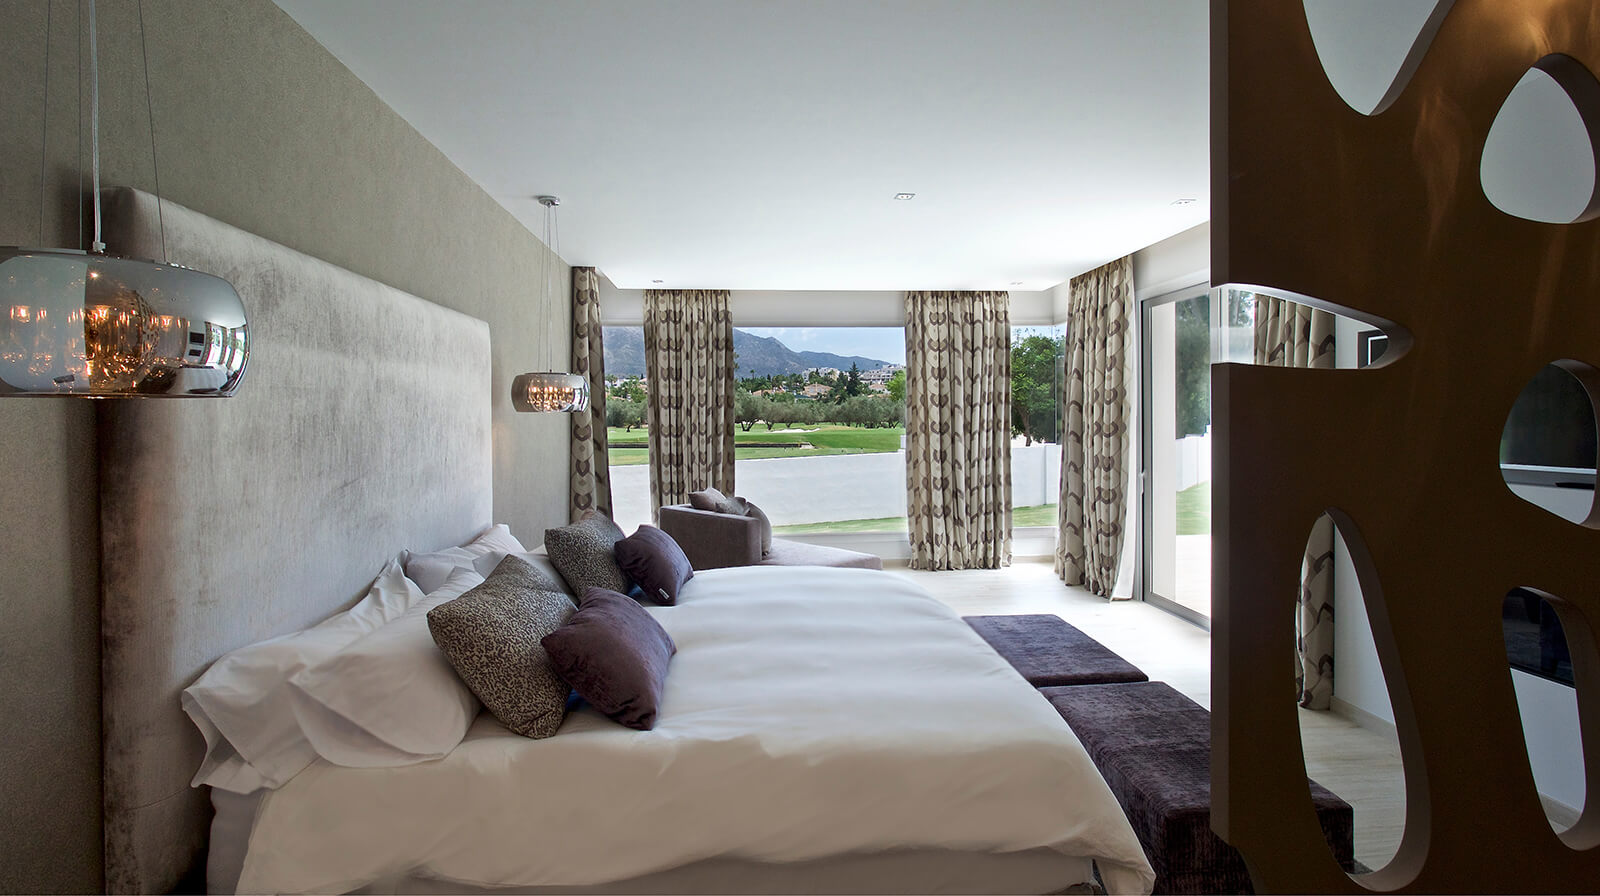 Country Lifestyle Villa bedroom view